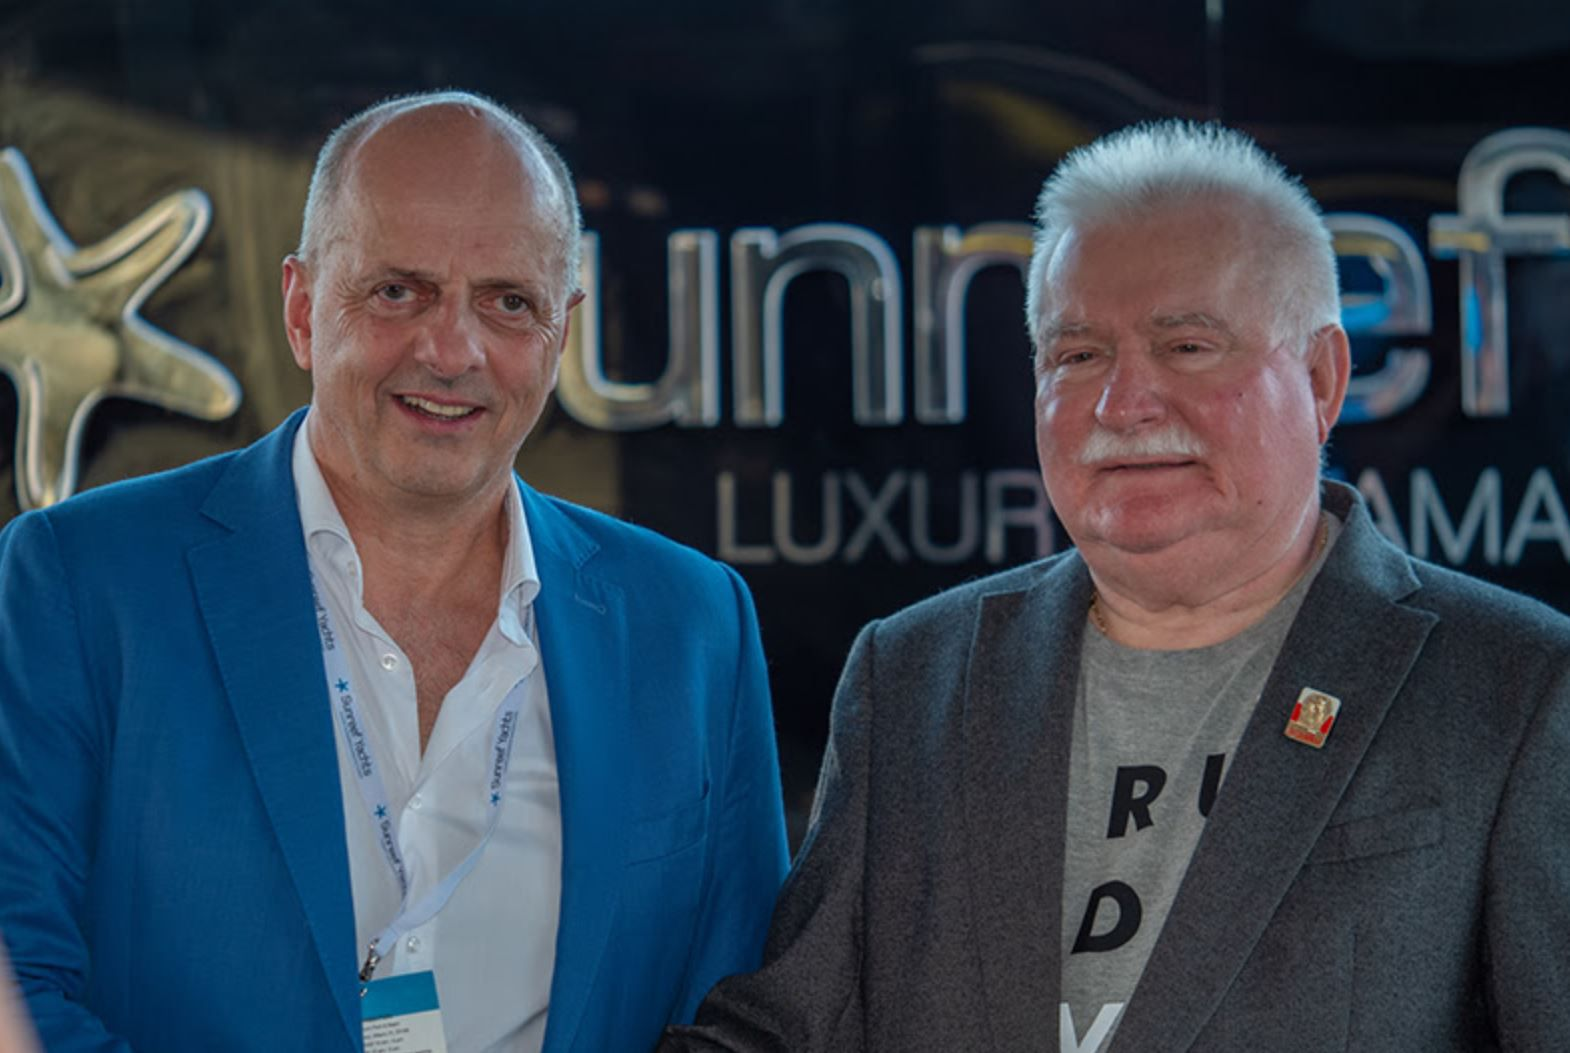 Francis Lapp, founder and president of Sunreef Yachts, with Lech Walesa, former President of Poland